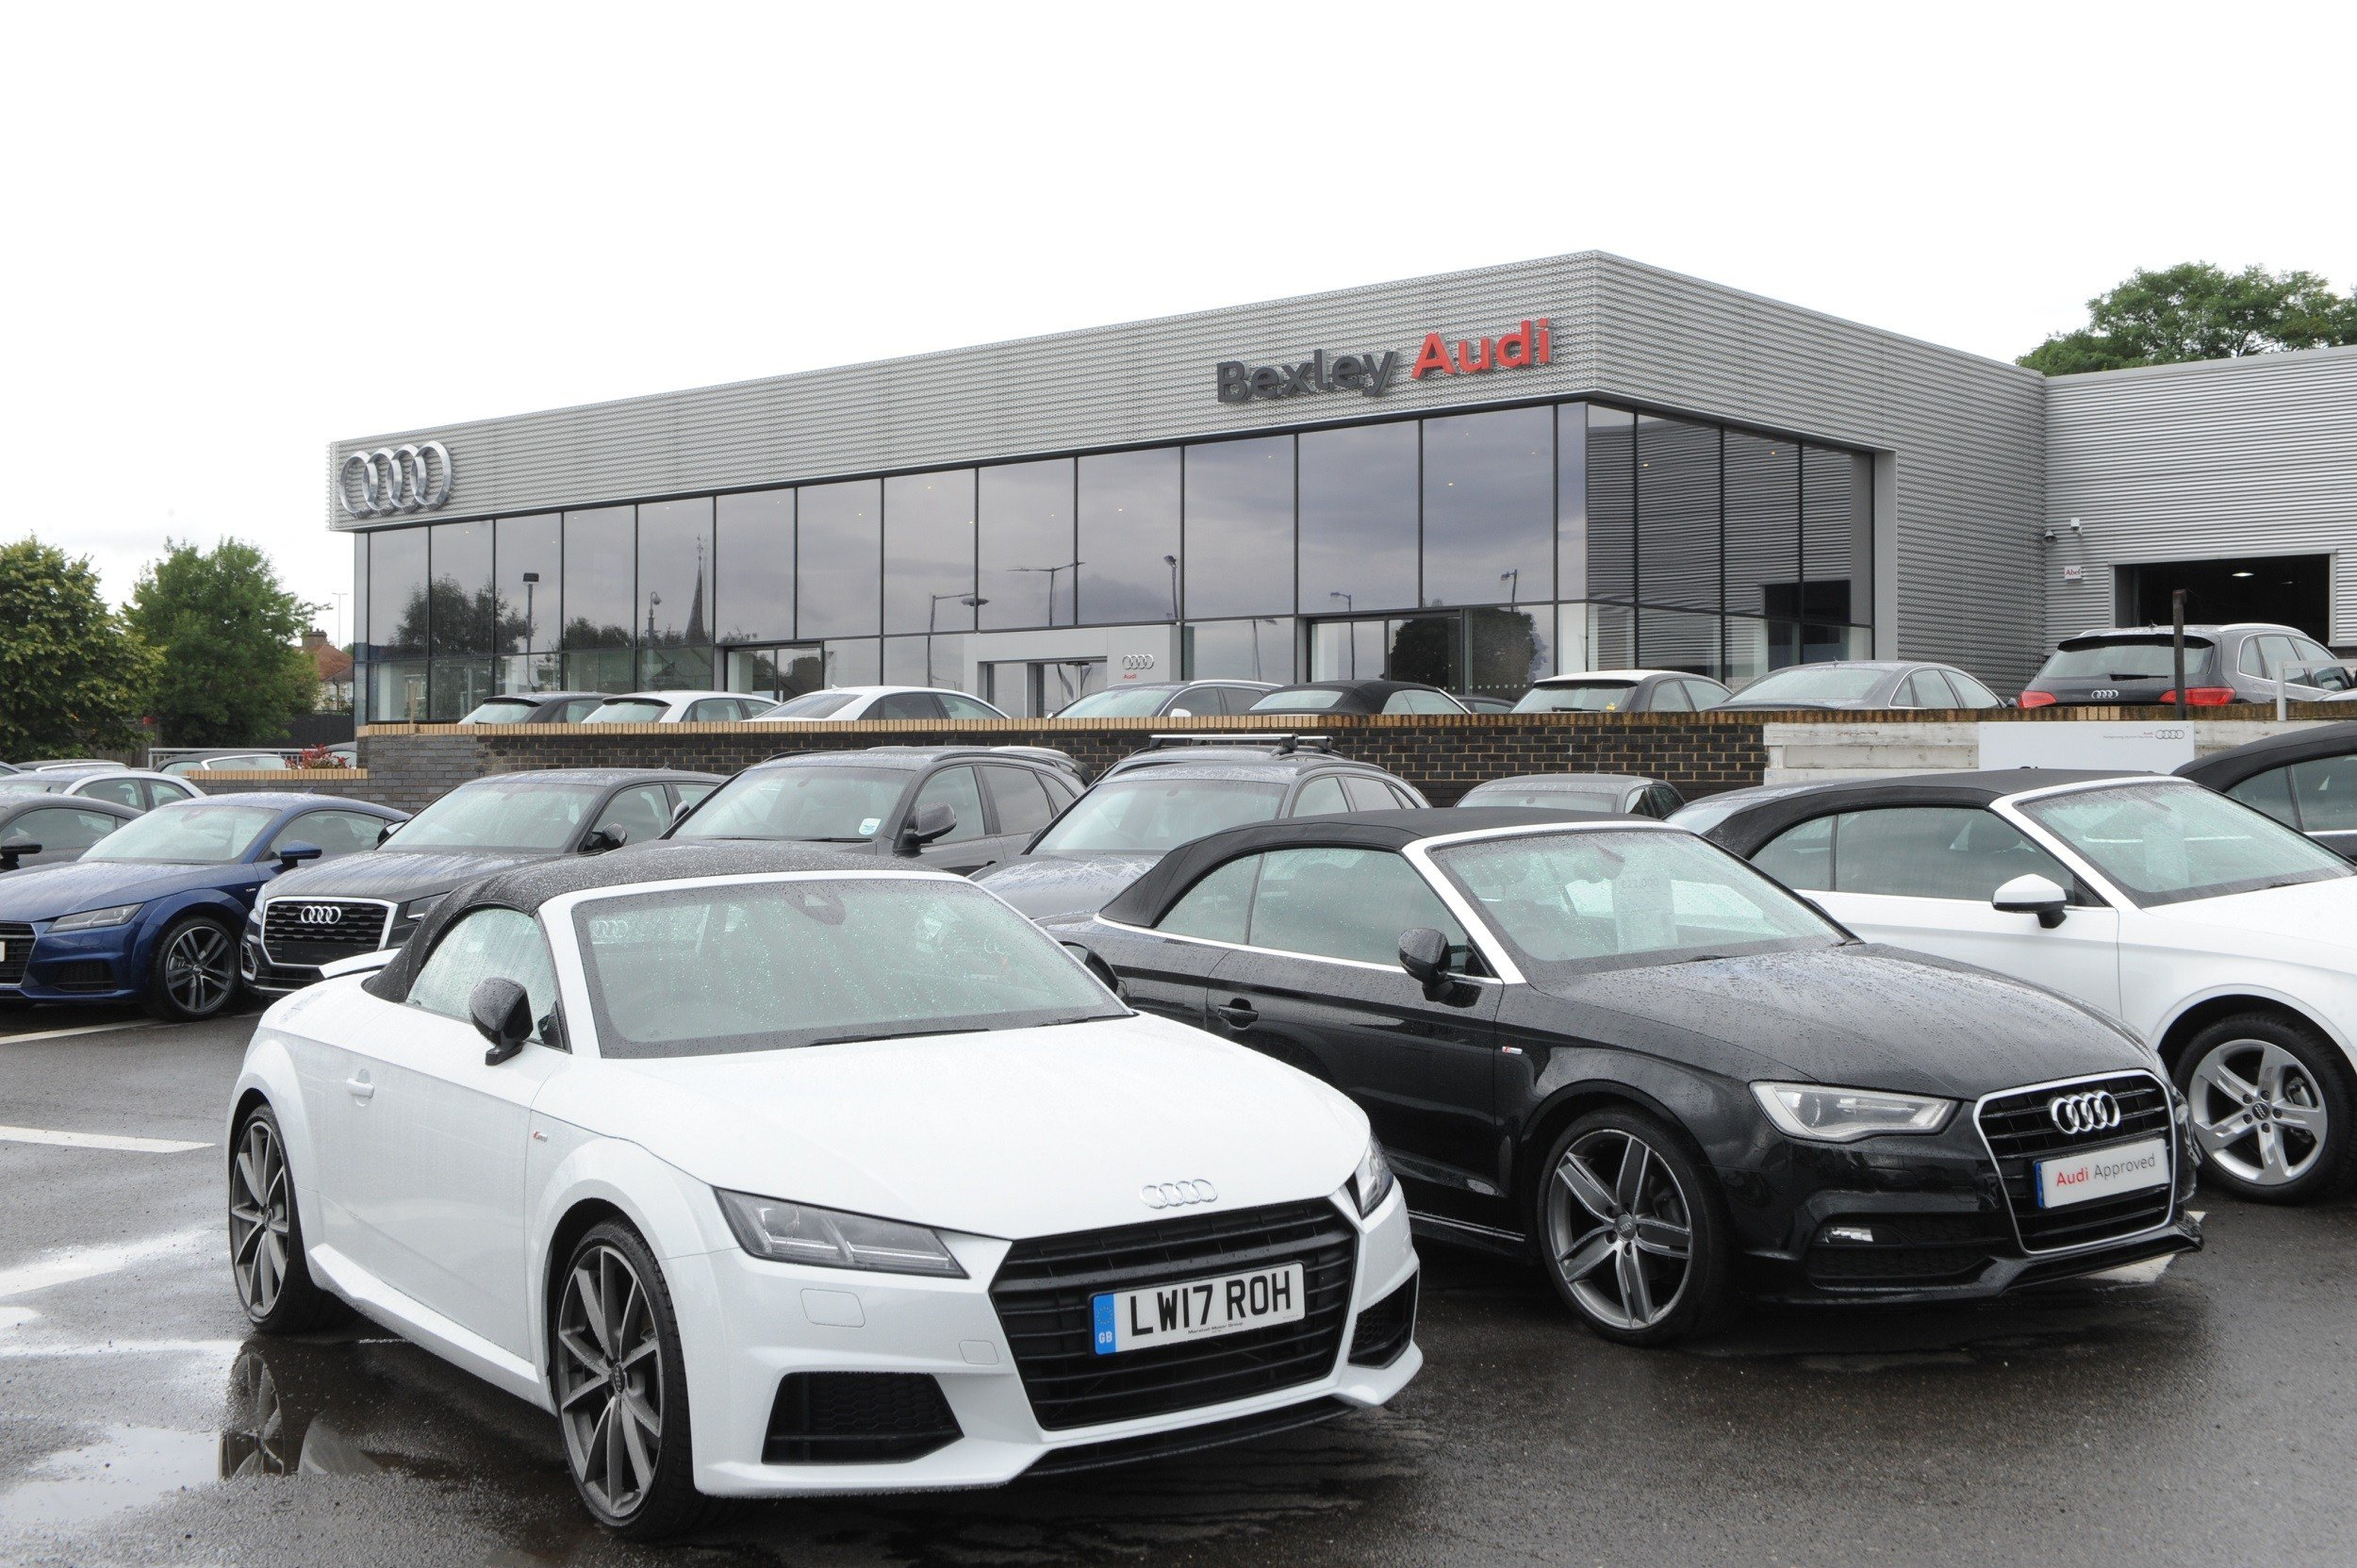 Latest Audi Car Showroom Extension Bexley – Synergy Llp Free Download